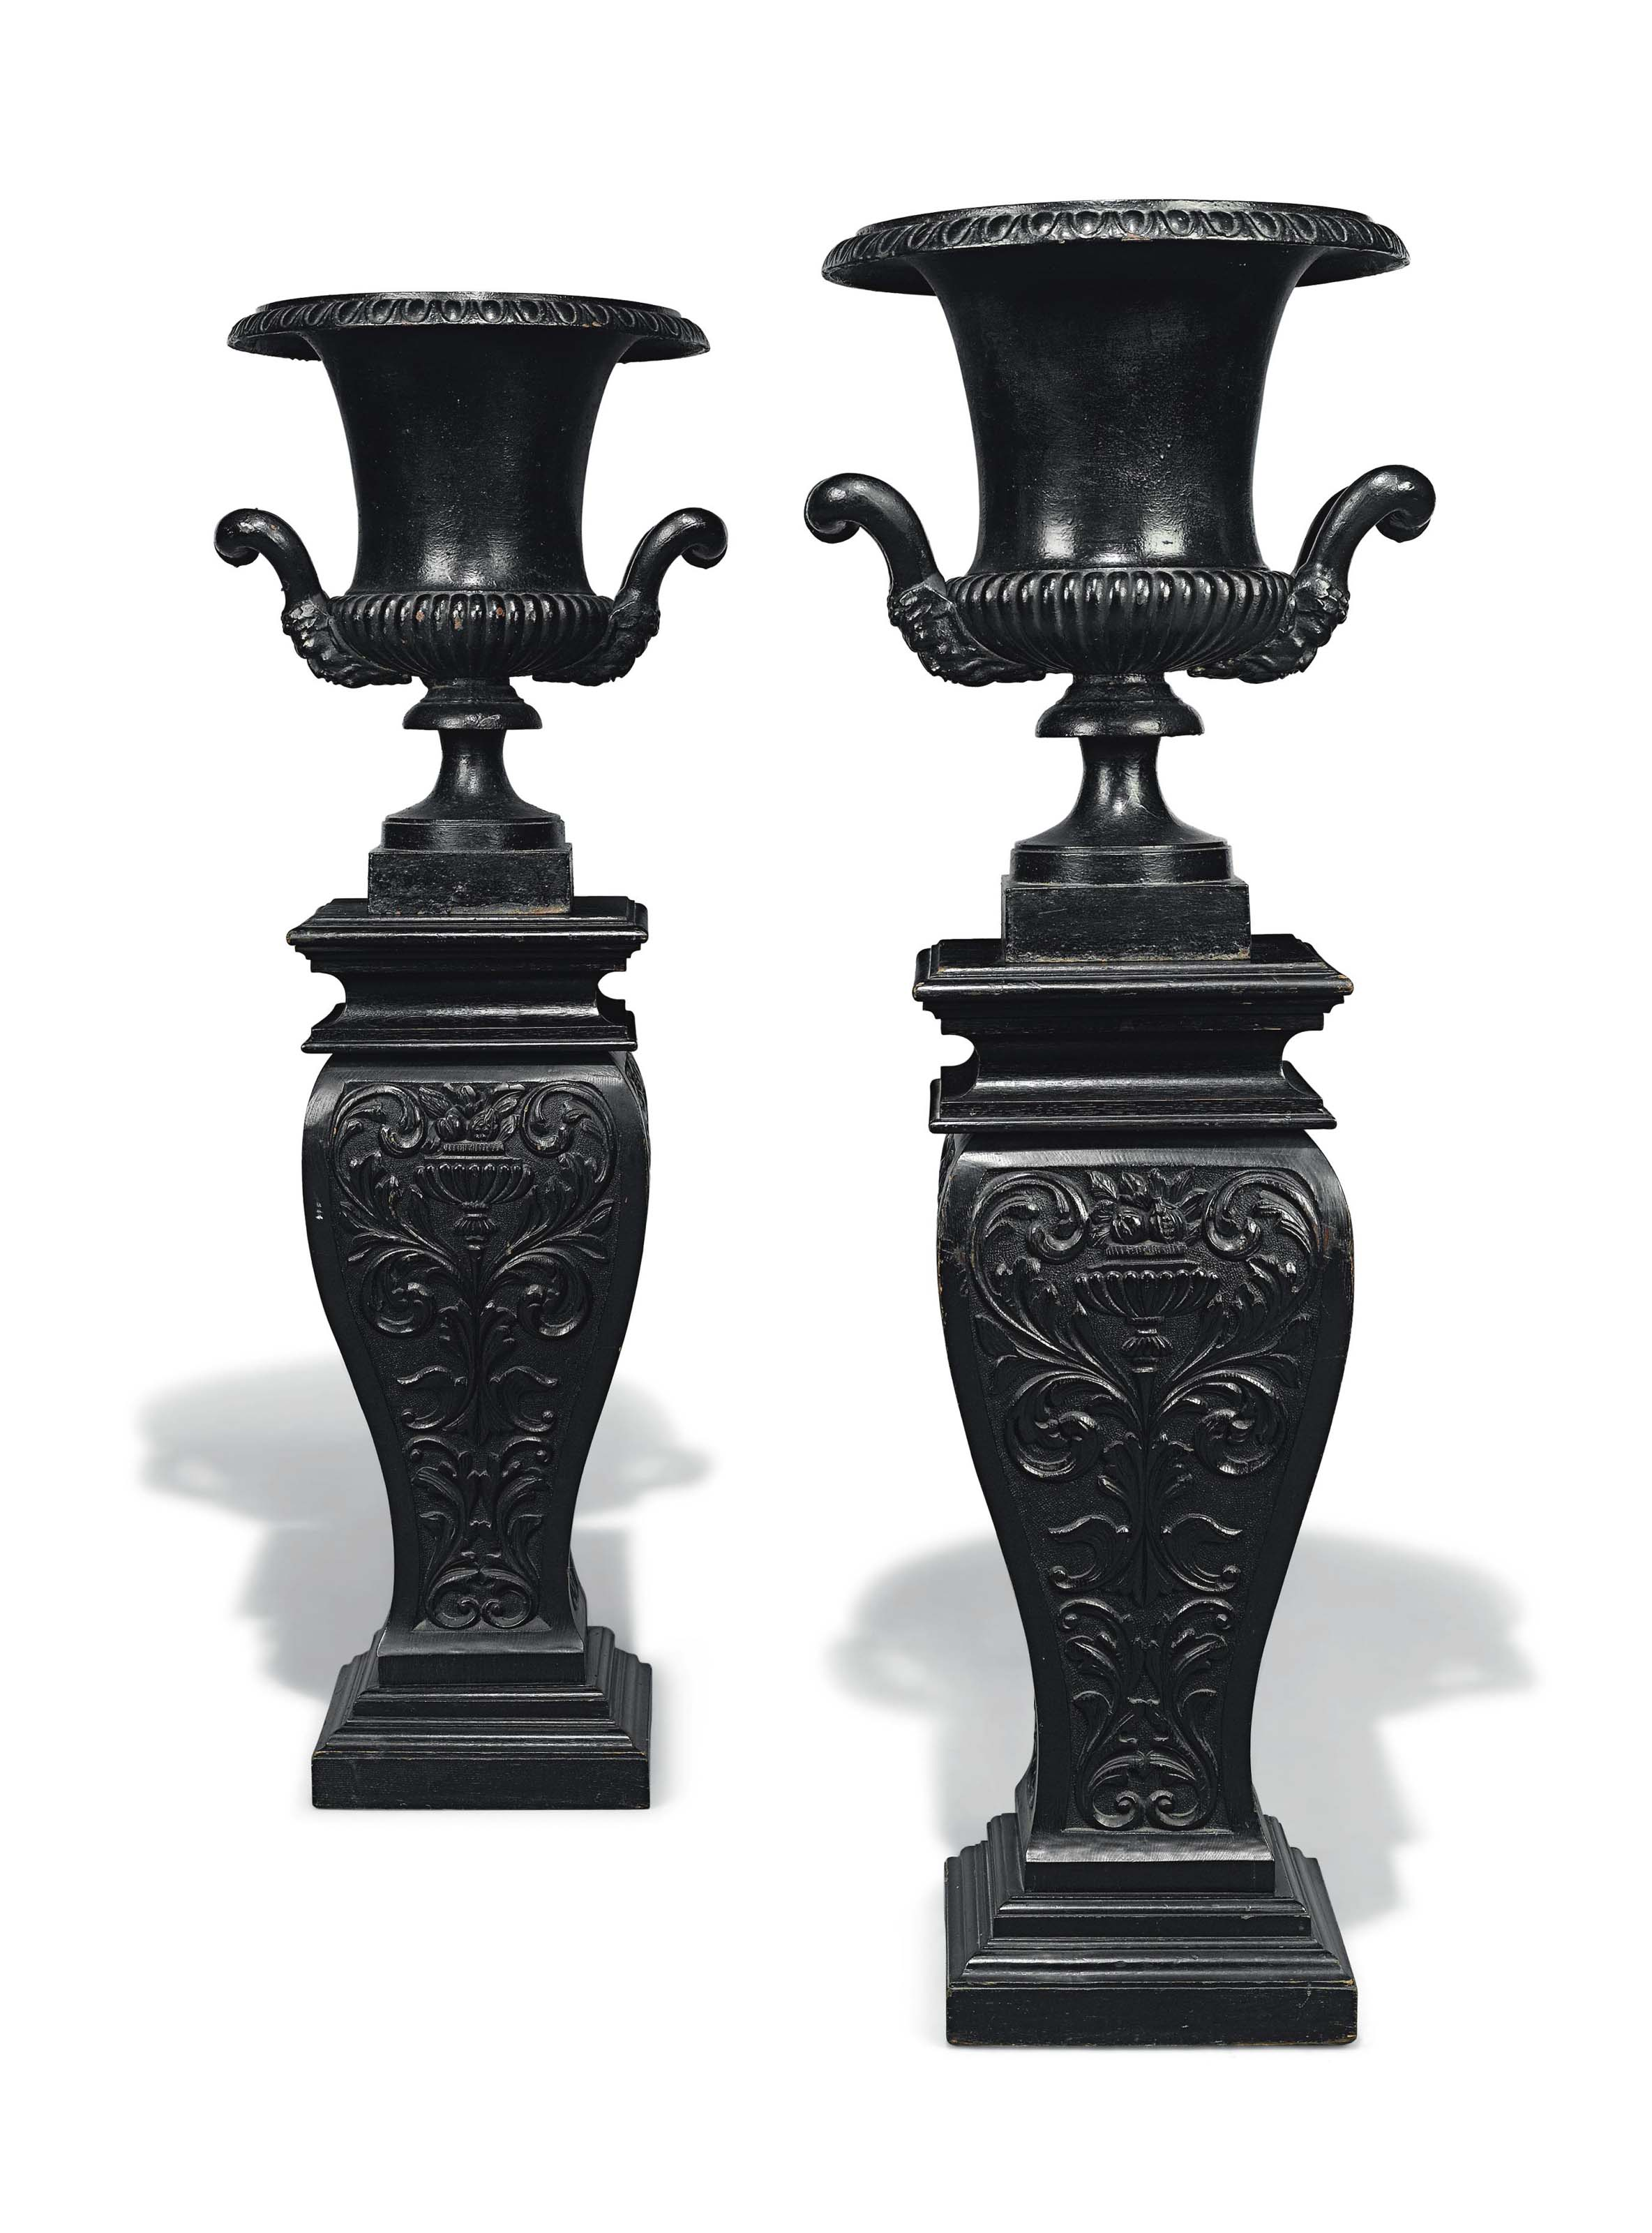 A PAIR OF LATE VICTORIAN PAINT